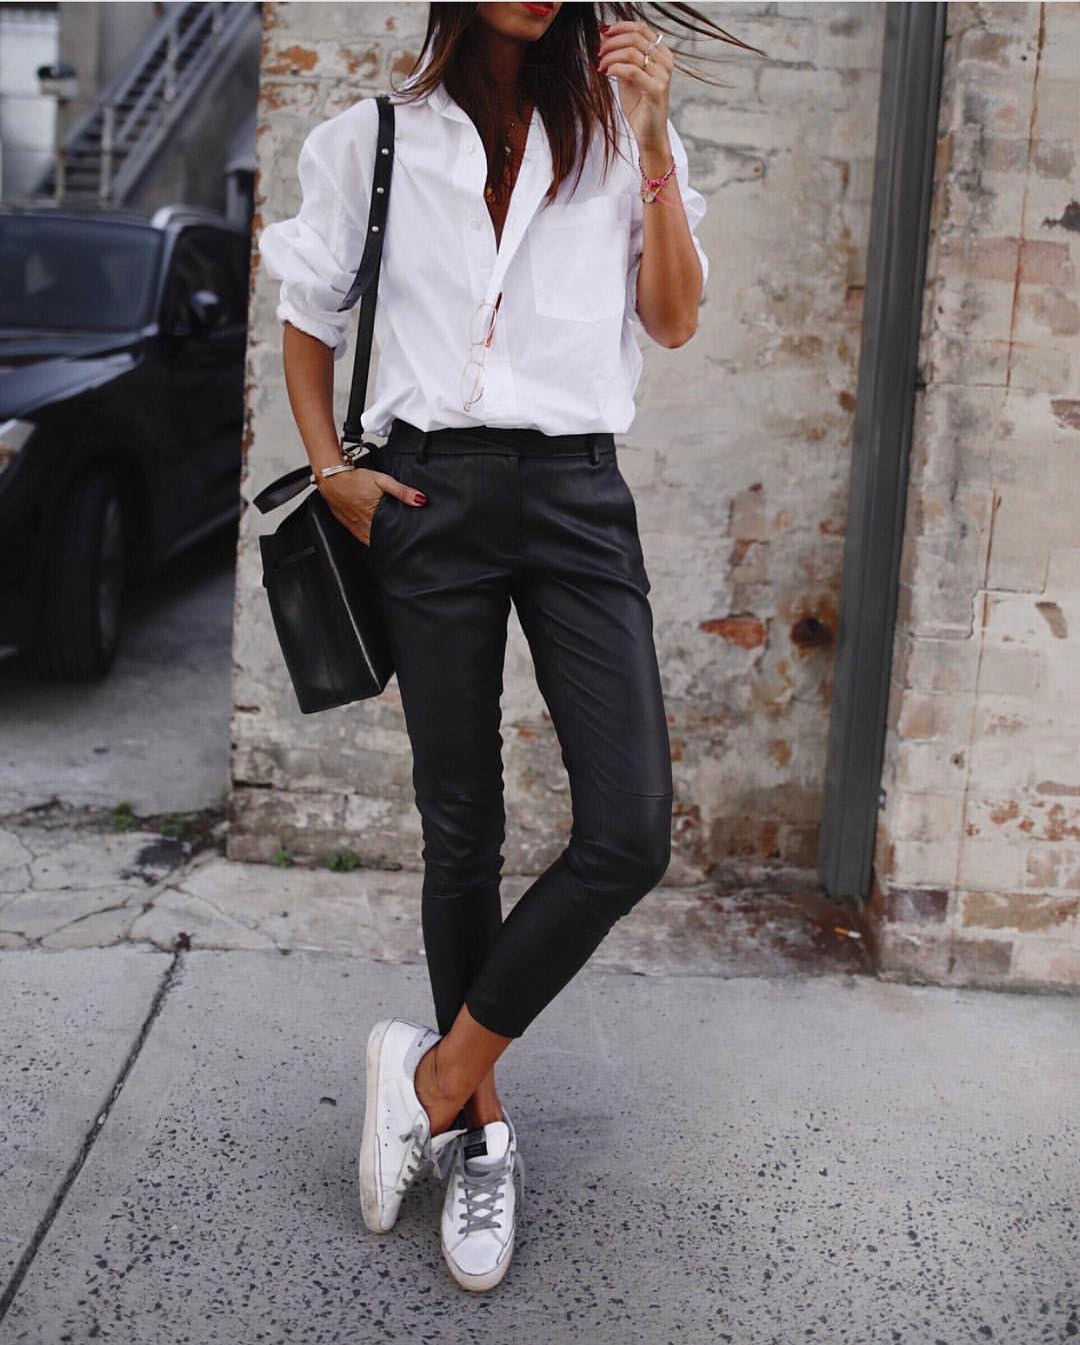 Spring Essentials: White Shirt And Black Leather Pants With White Kicks 2020